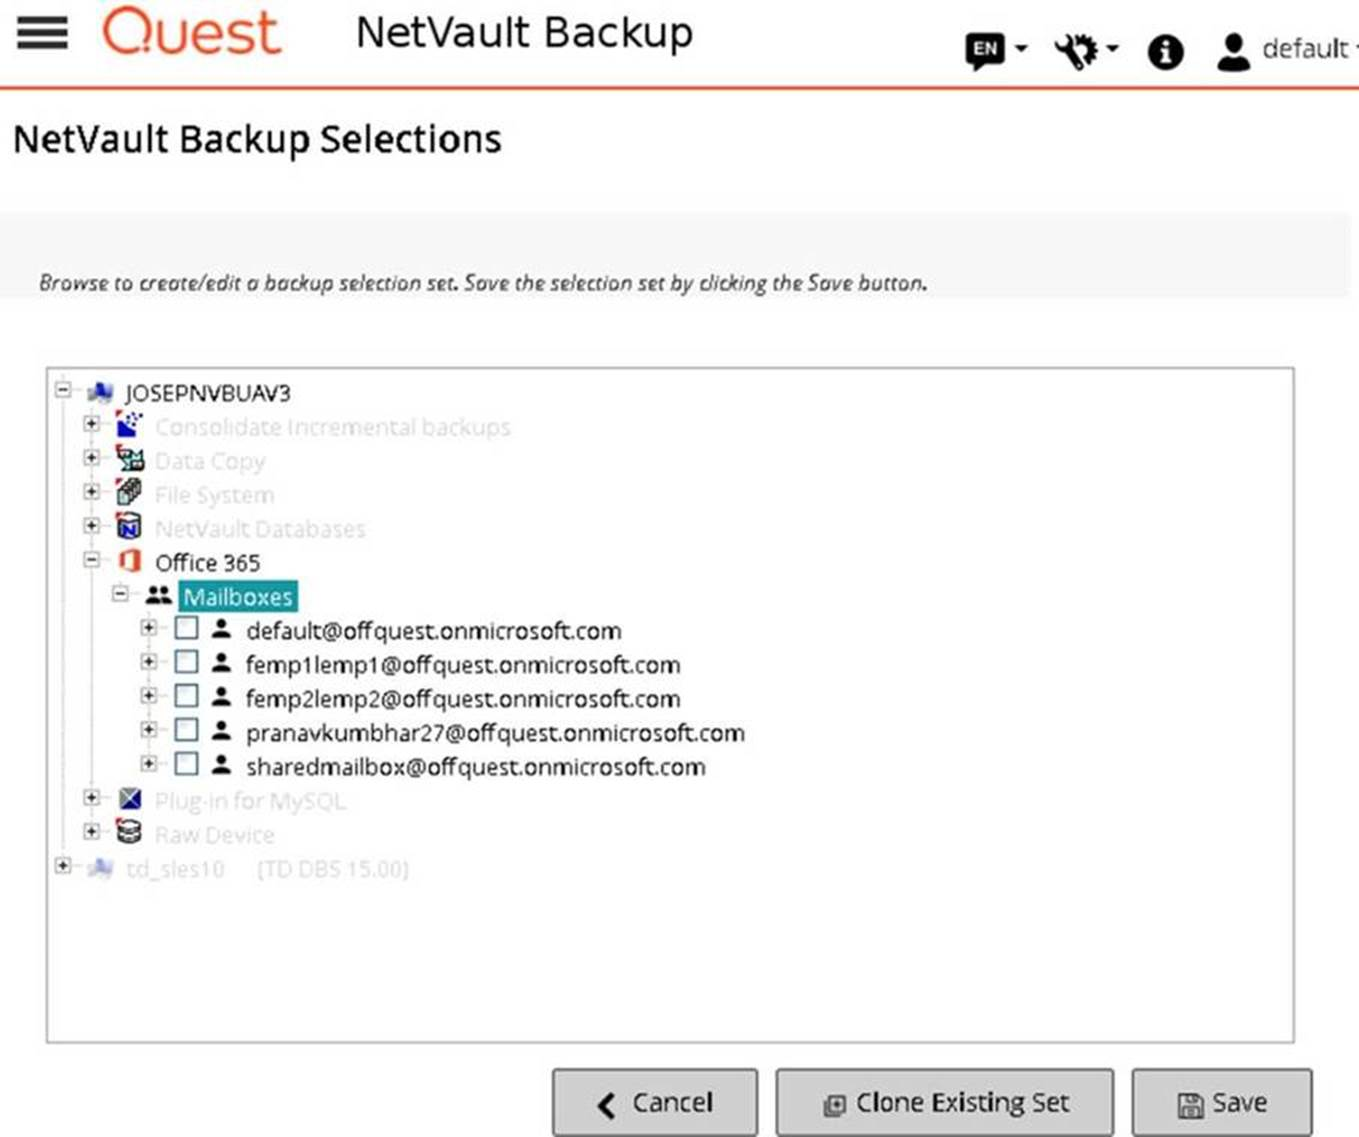 Screenshot of Quest NetVault Backup's Office 365 support